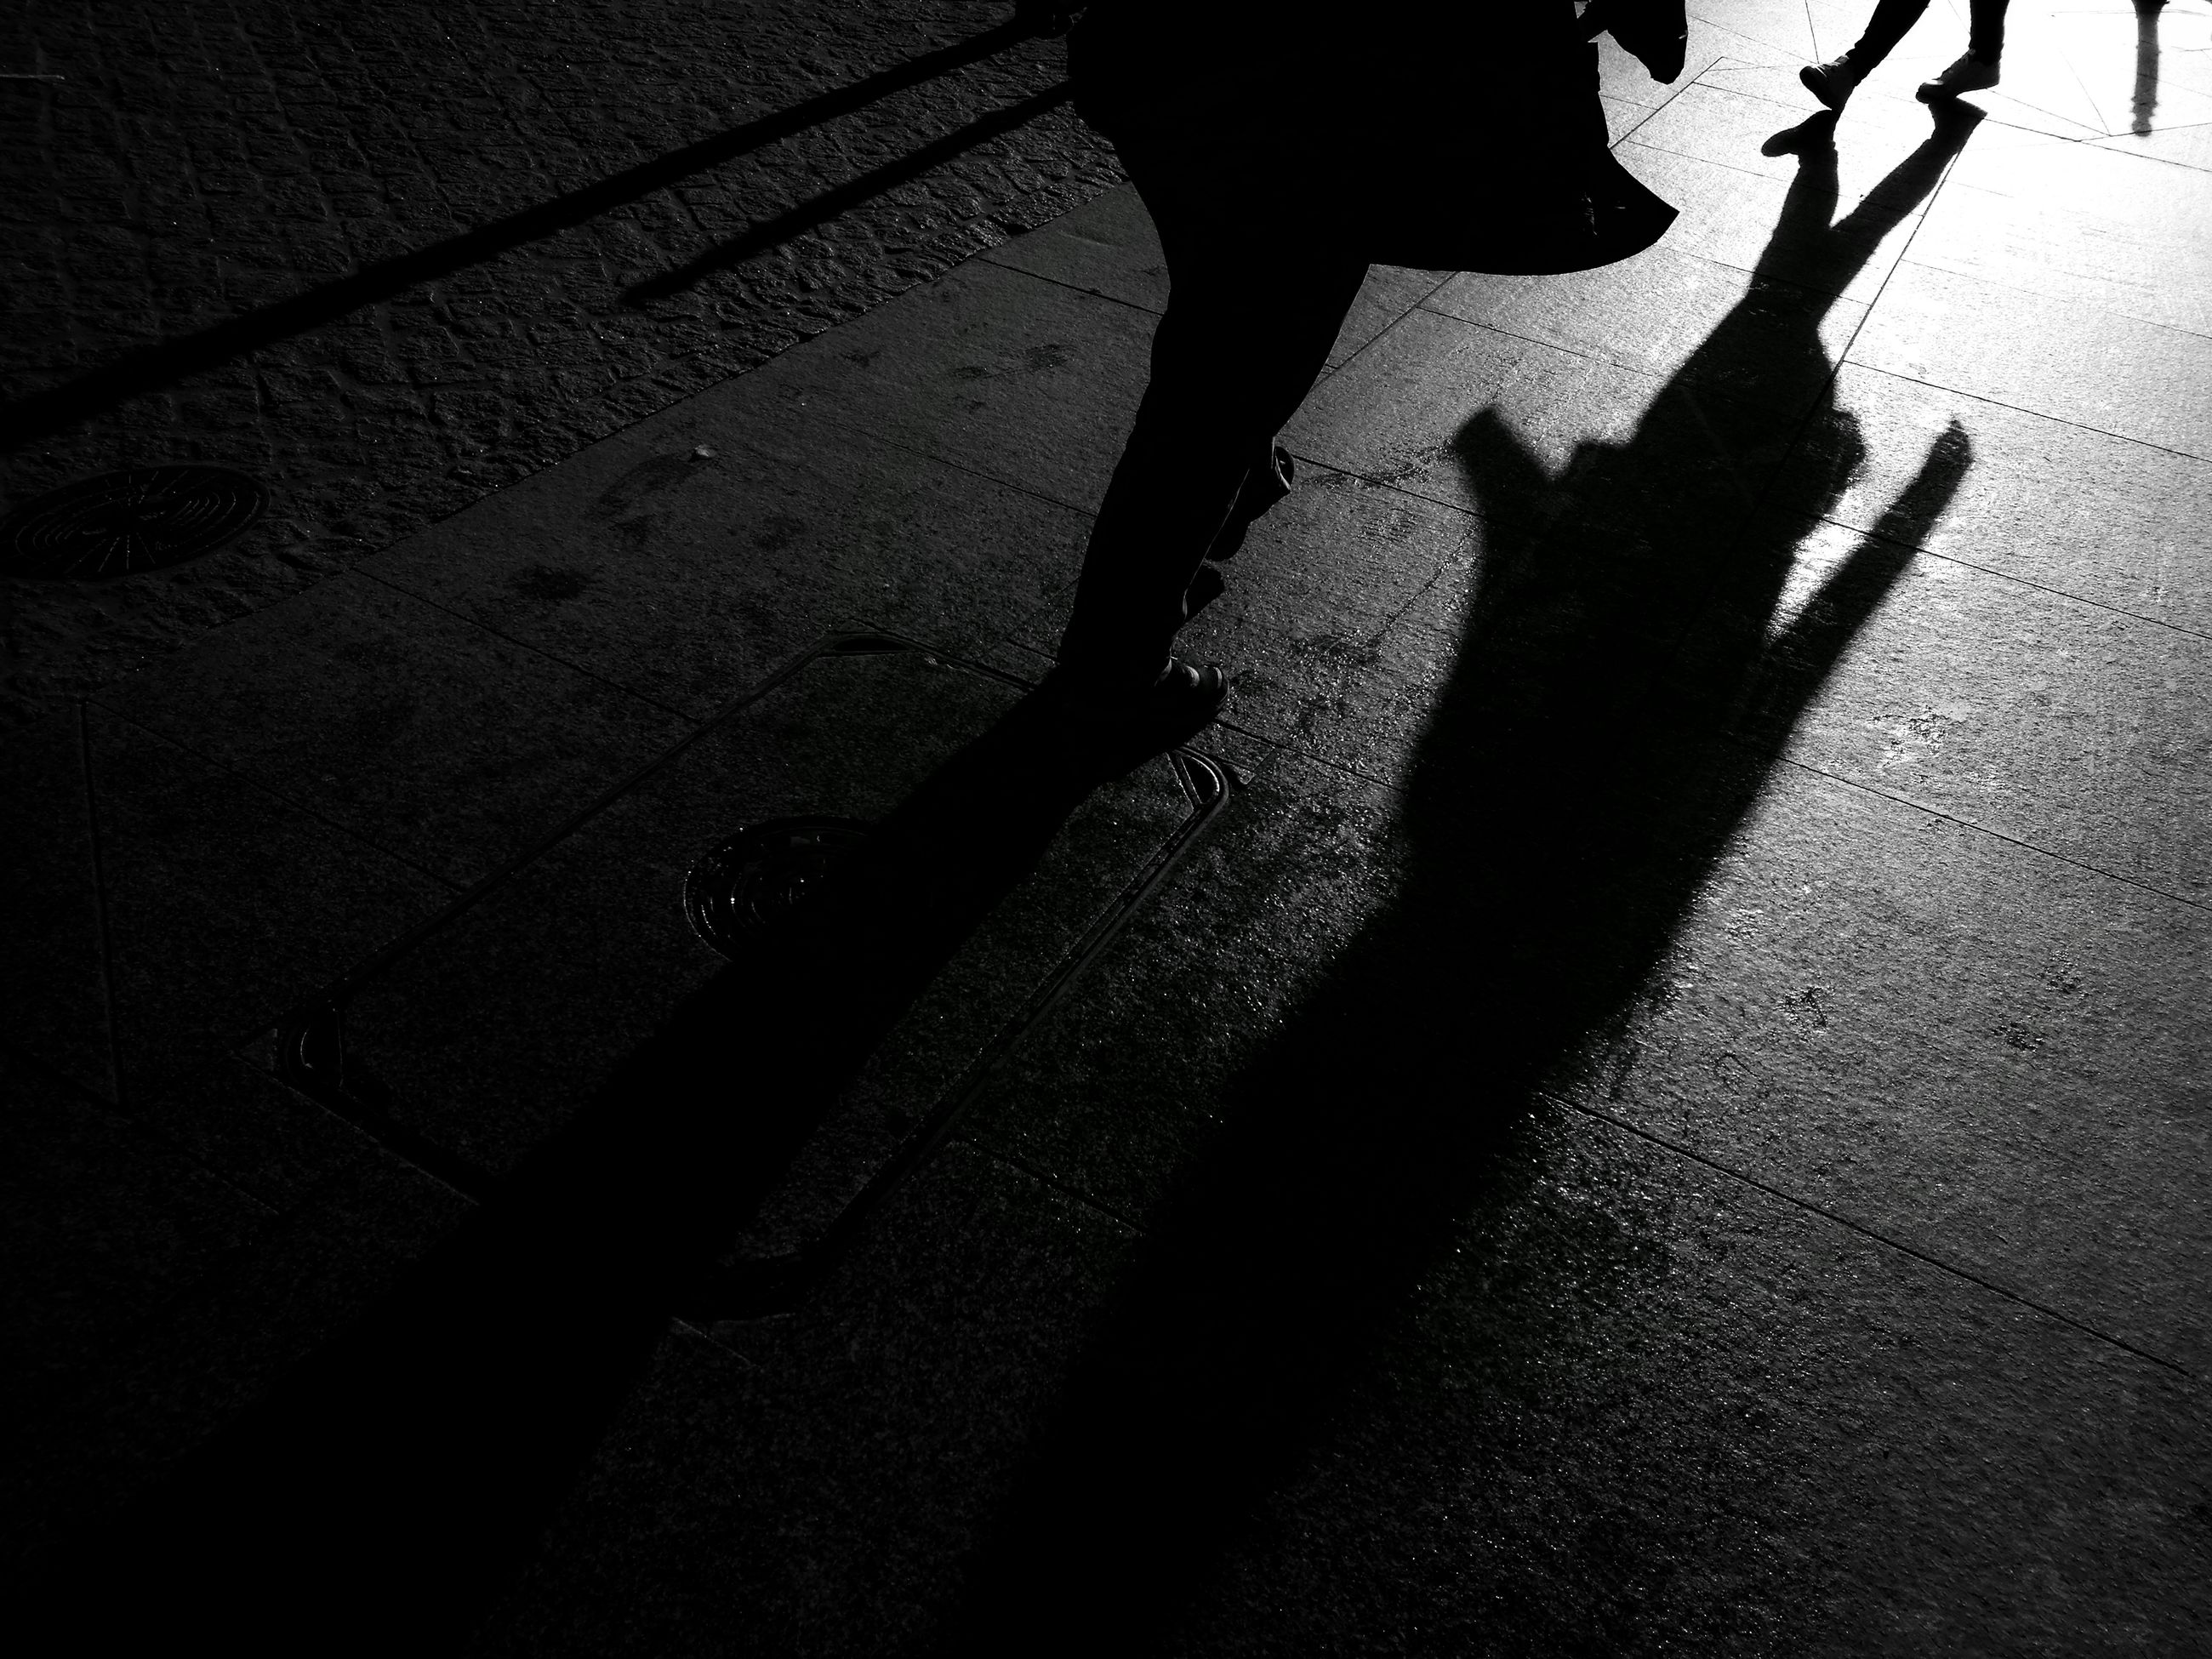 shadow, low section, street, walking, person, footpath, black and white, outdoors, dark, city life, focus on shadow